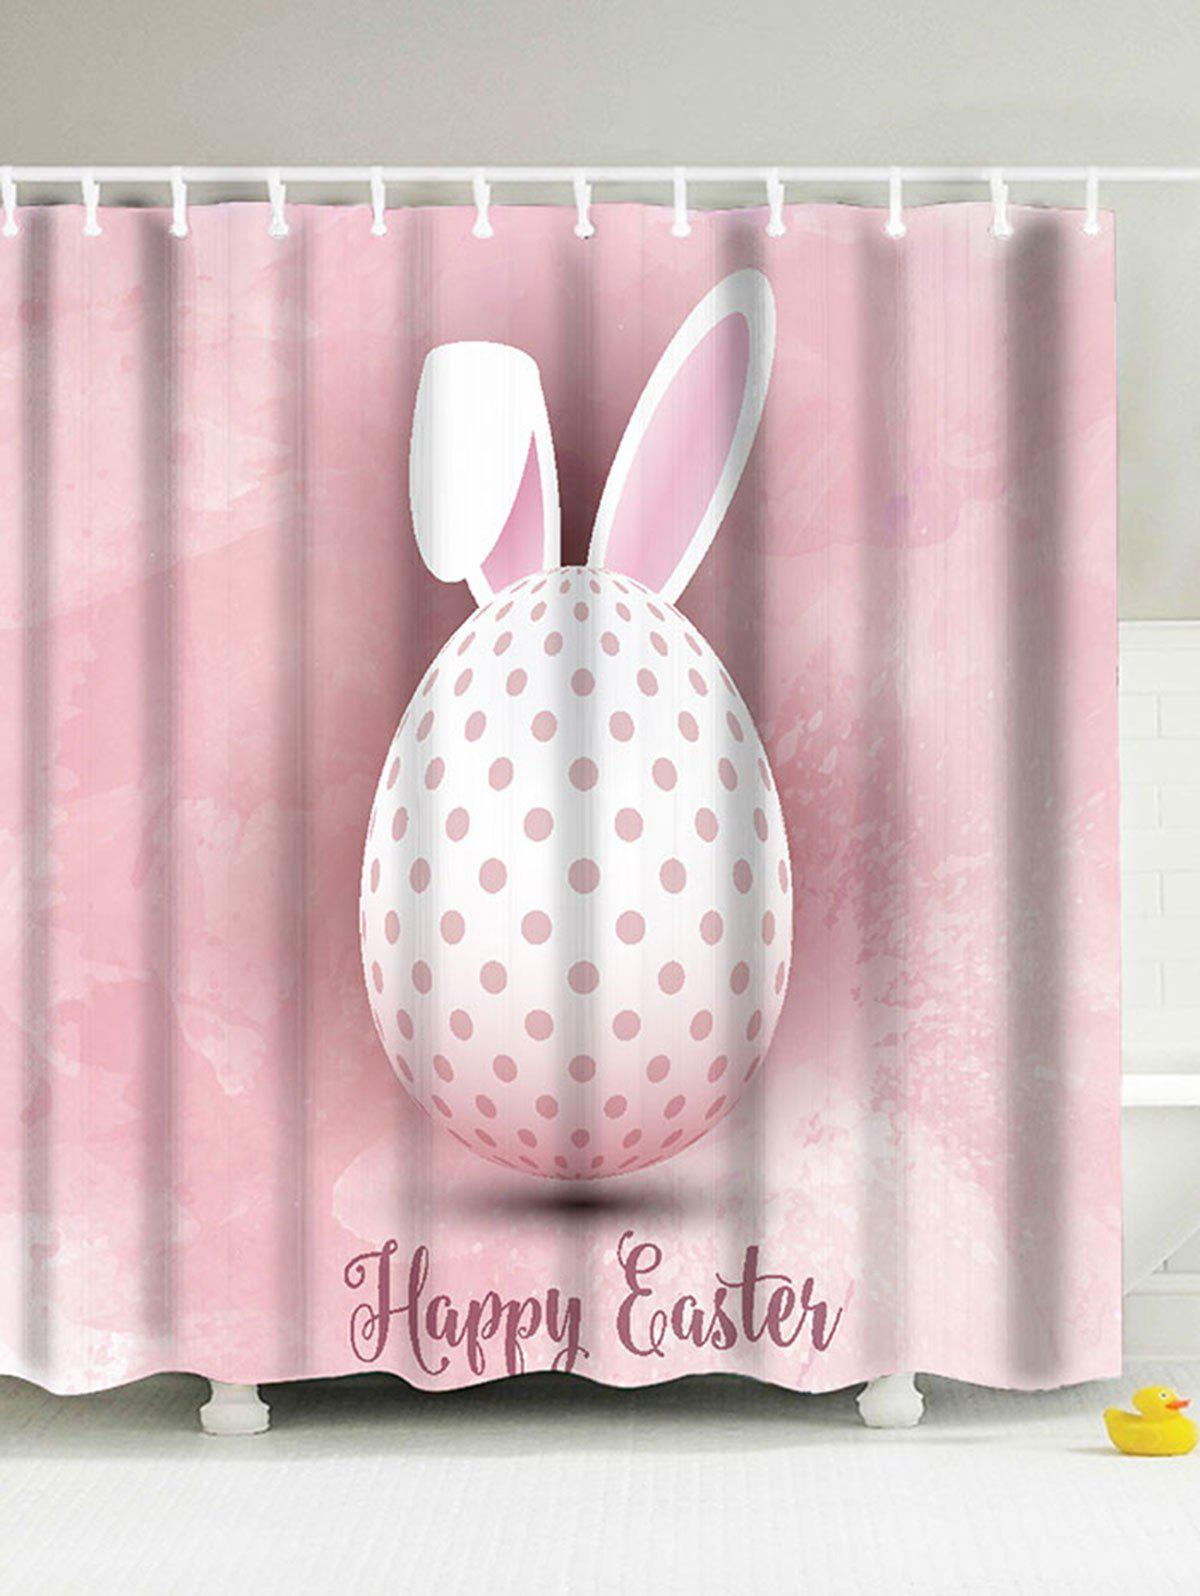 Happy Easter Rabbit Egg Eco-Friendly Shower Curtain eco friendly convenience automatic yogurt maker machine 15w 1l